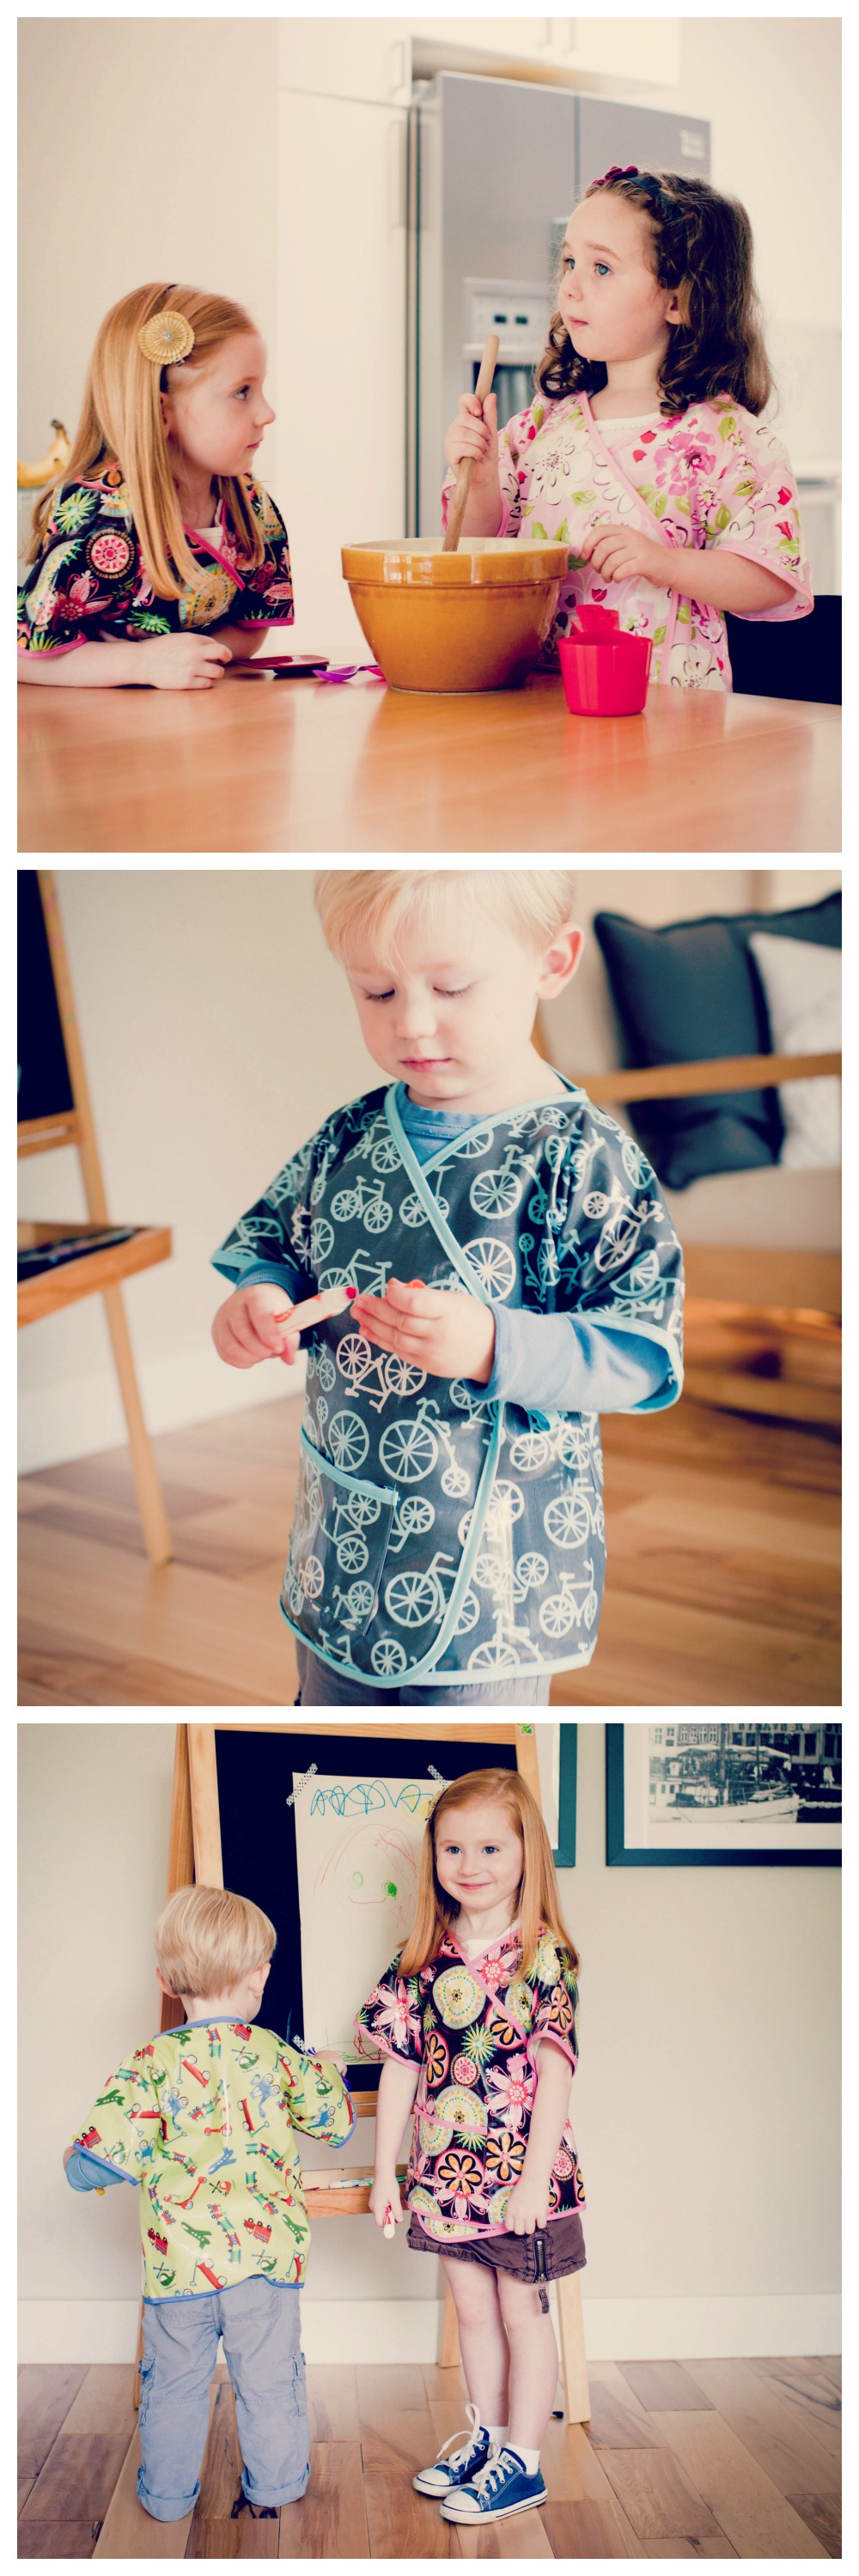 Waterproof laminated cotton kimono style art smock // timeless solutions to life's messy times